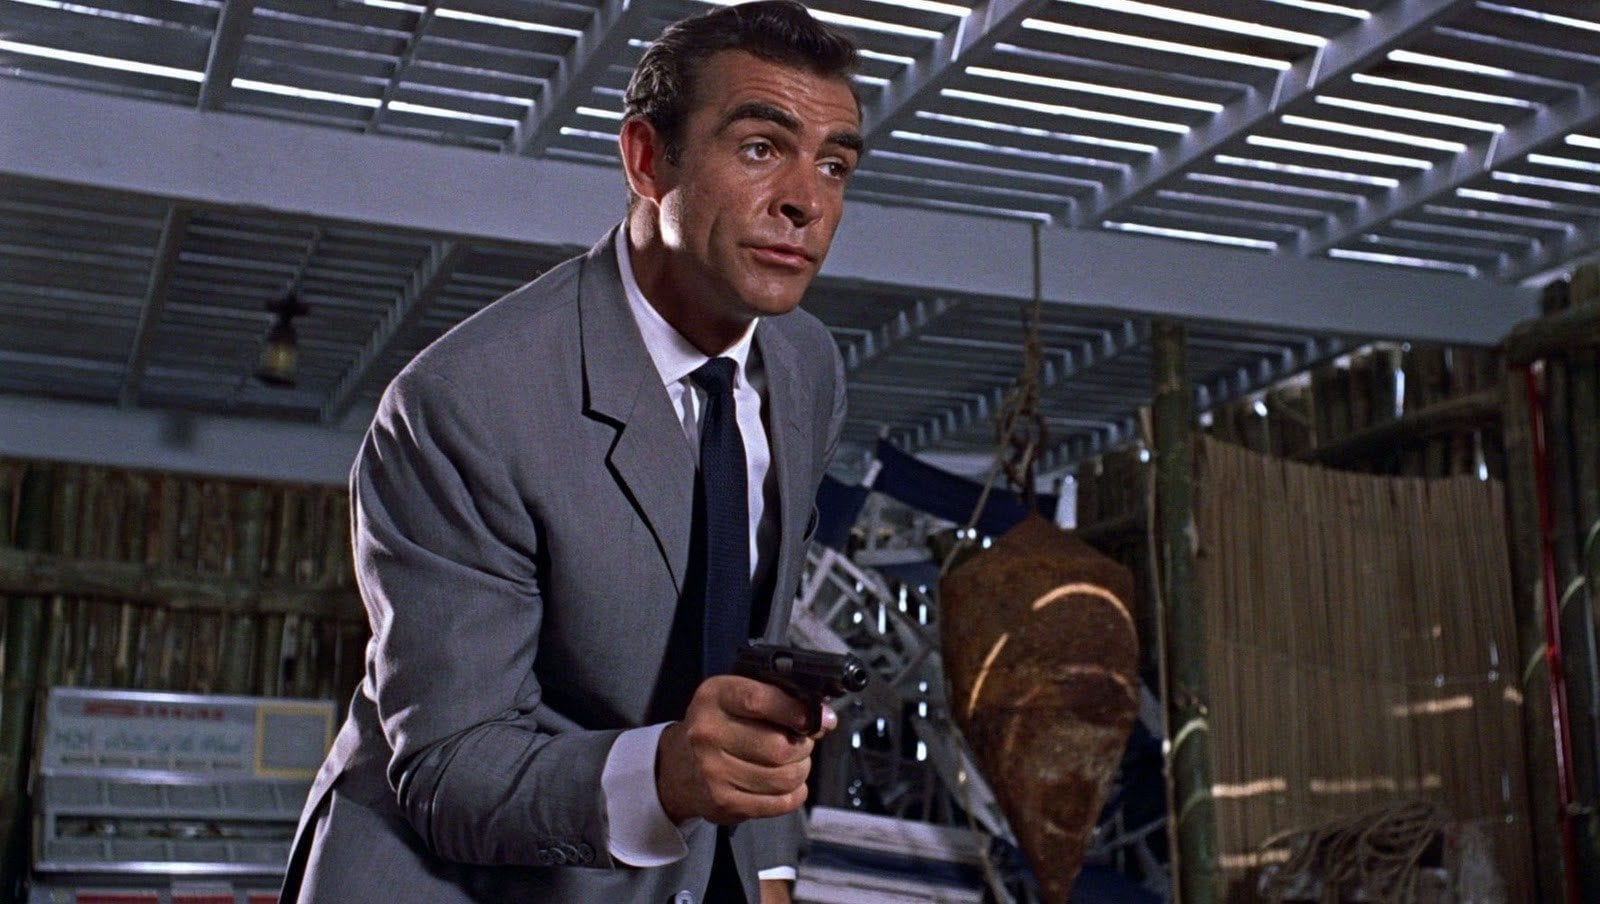 bond and gun, James Bond, Dr. No, Sean Connery, 007